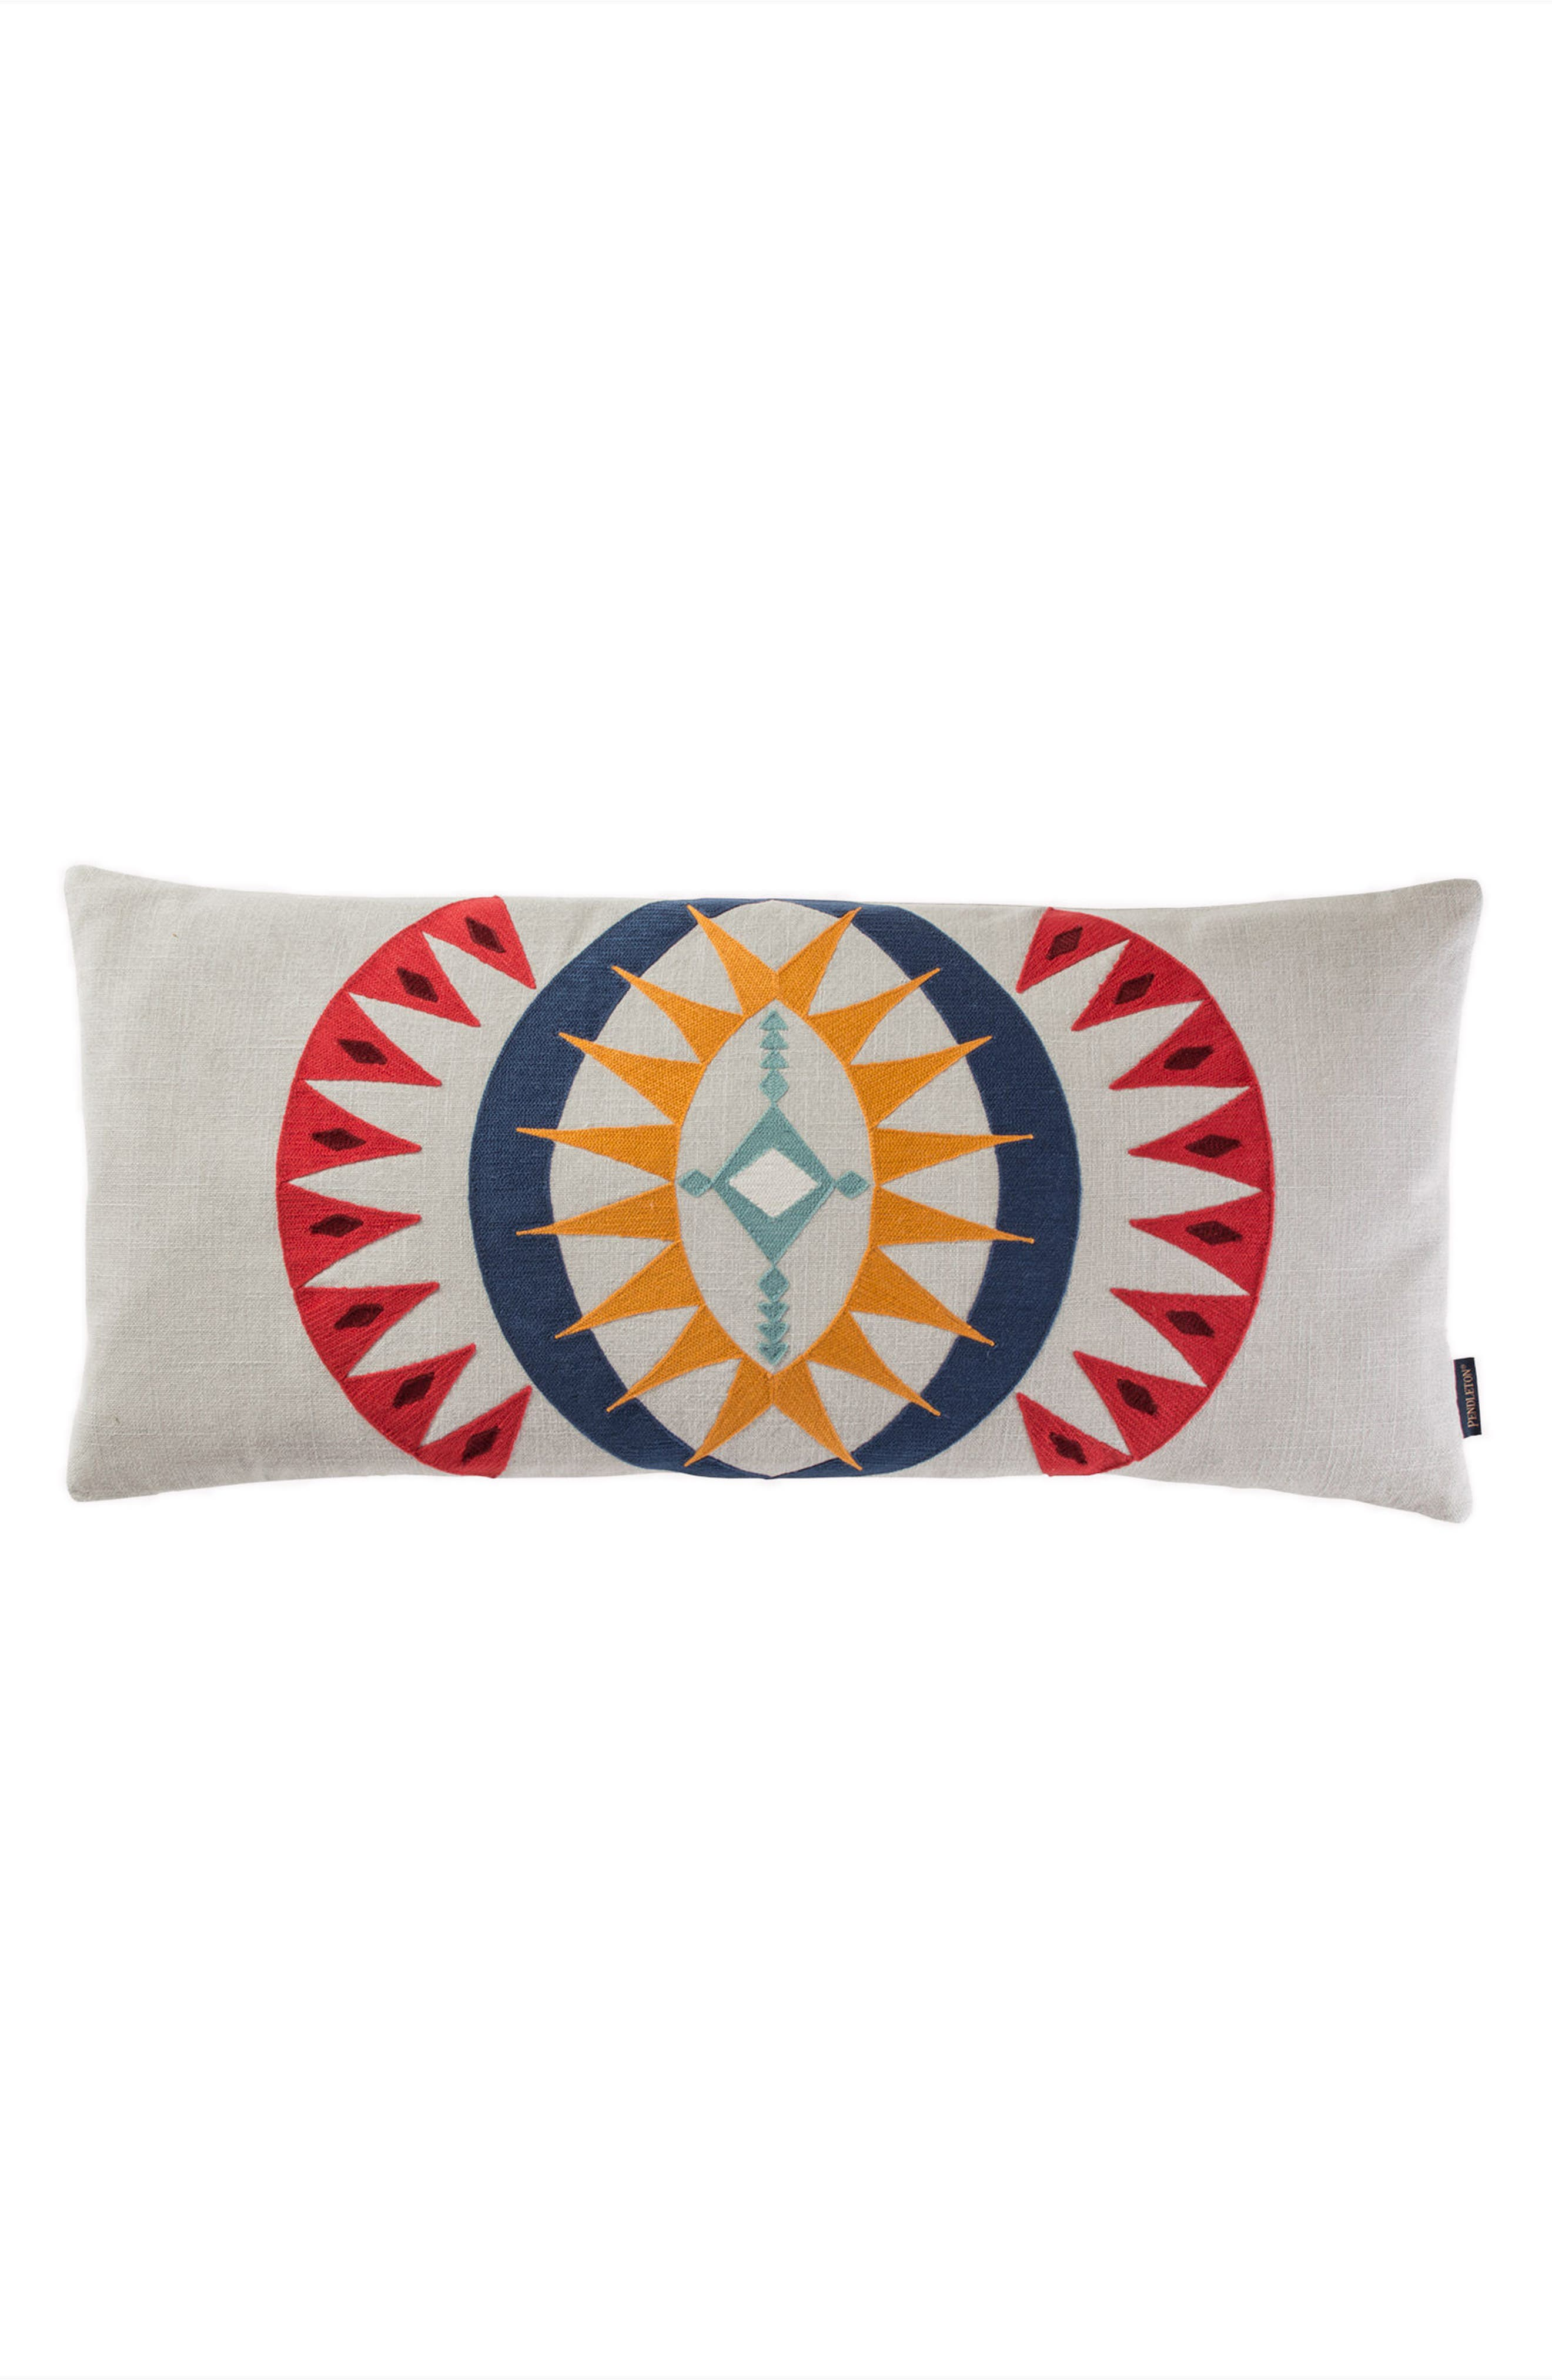 Point Reyes Crewel Embroidered Accent Pillow,                             Main thumbnail 1, color,                             GREY MULTI